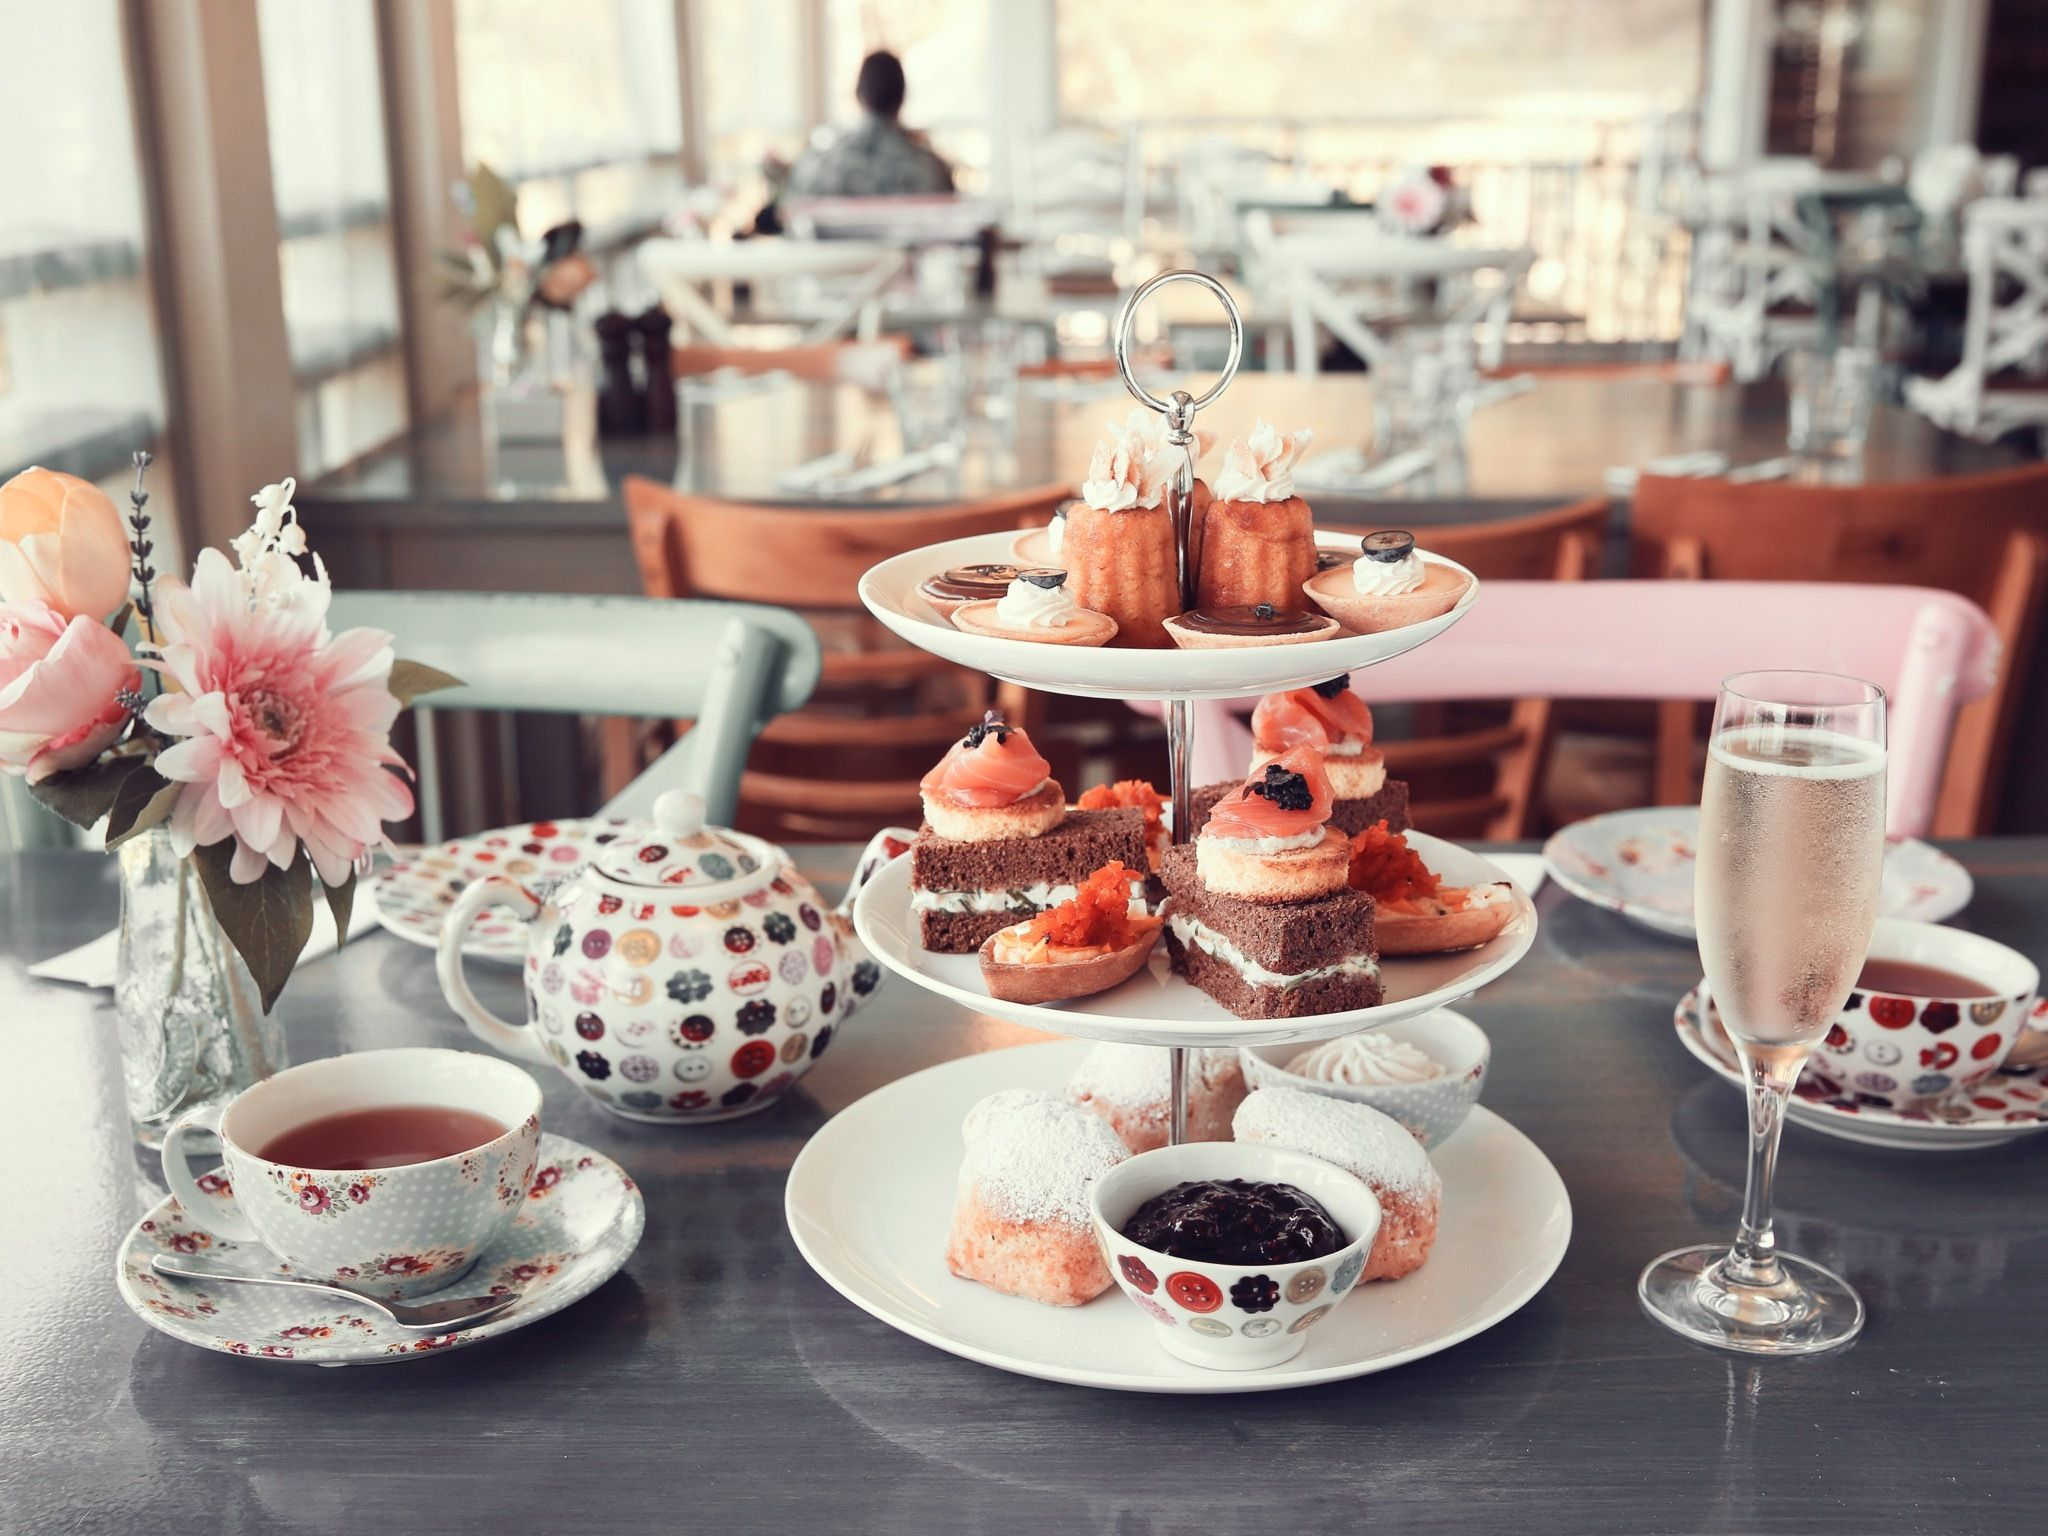 Where to find the best high tea in Sydney High tea